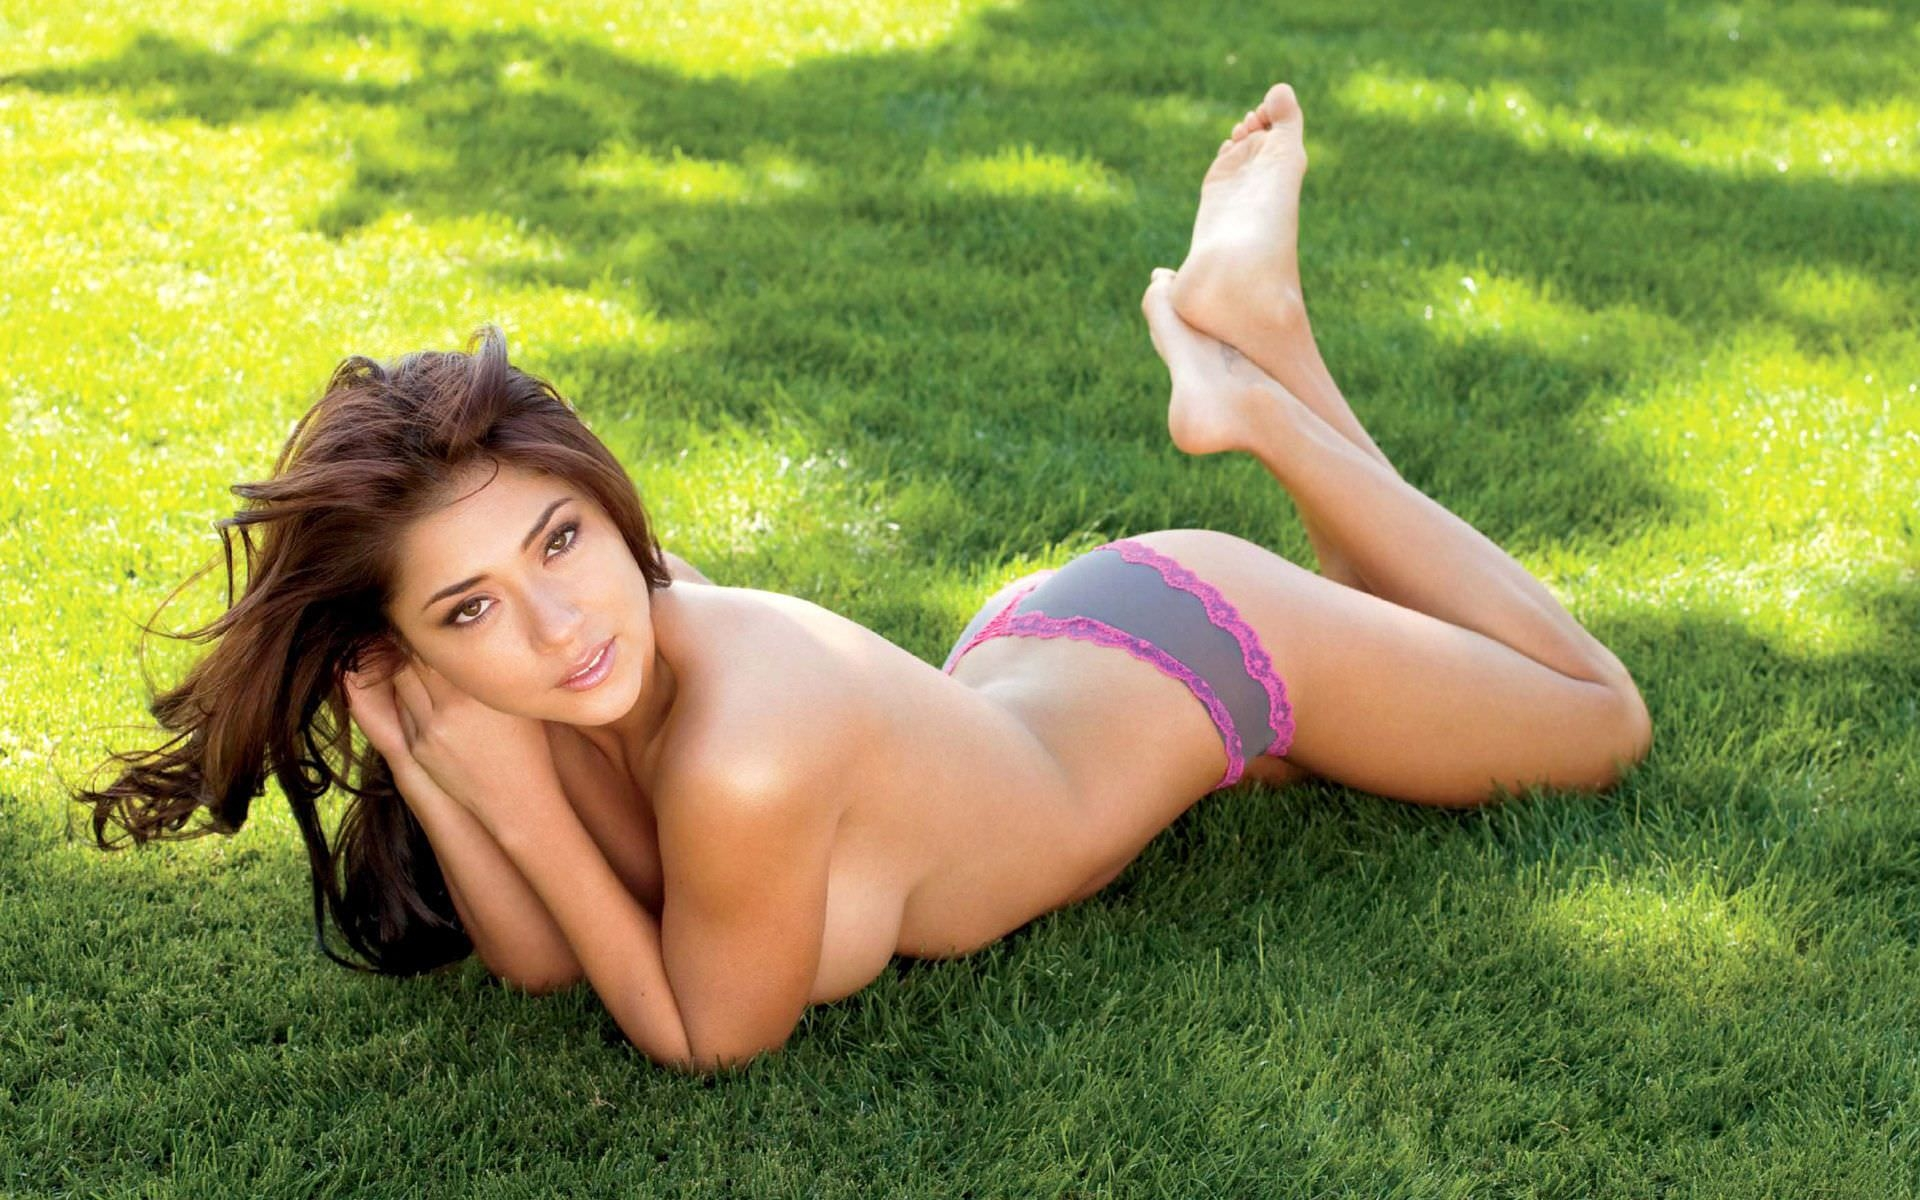 Pin on most sexy beautiful woman in world